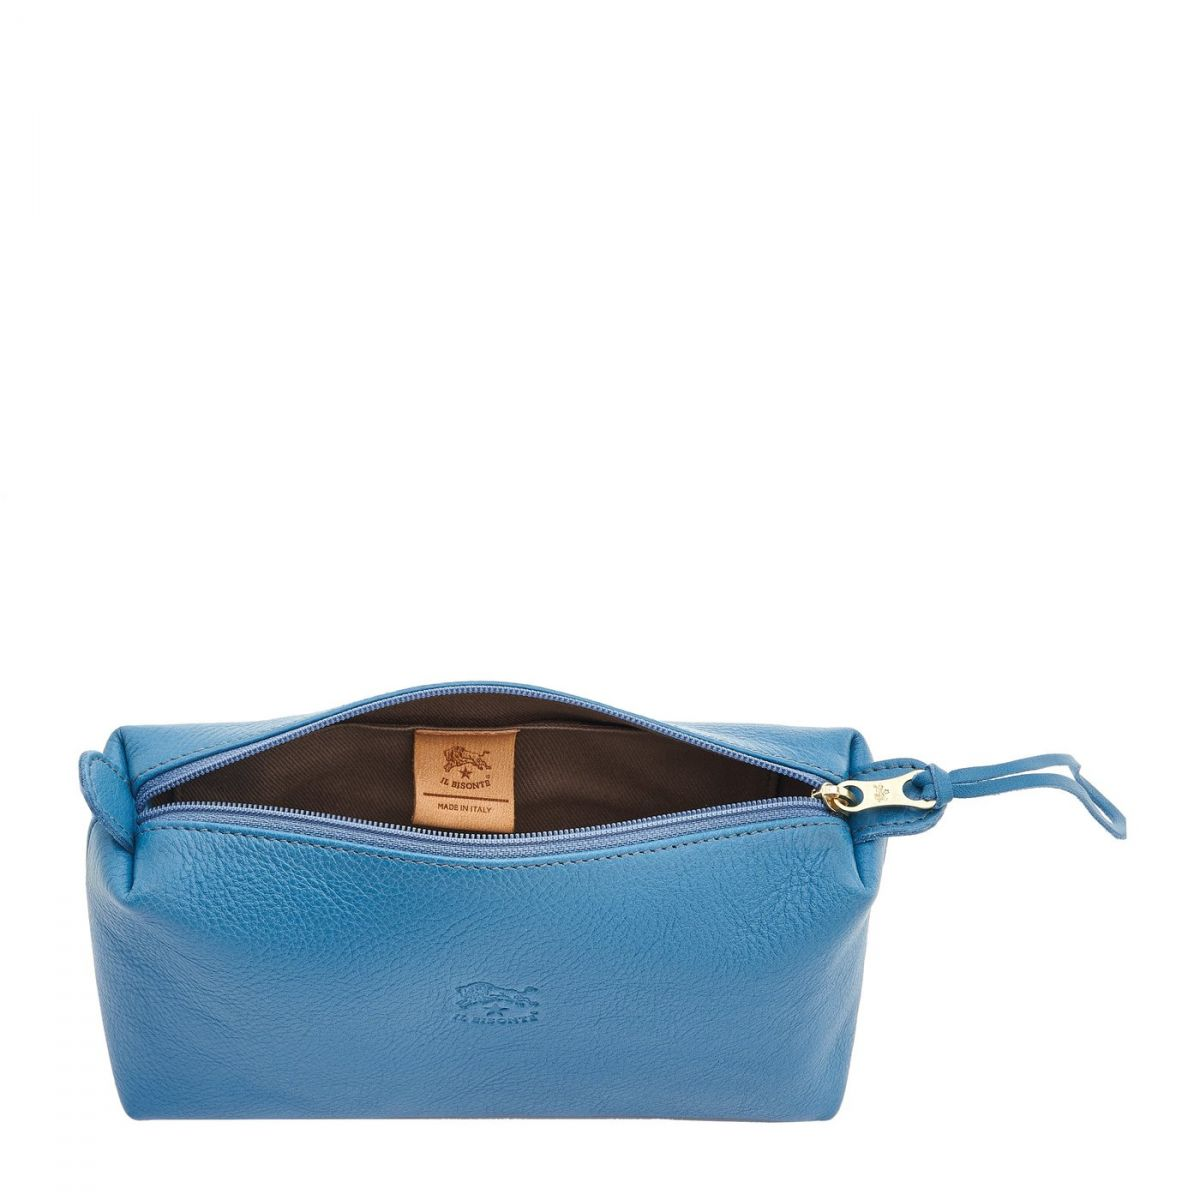 Women's Case in Cowhide Leather color Blue Teal - SCA012 | Details